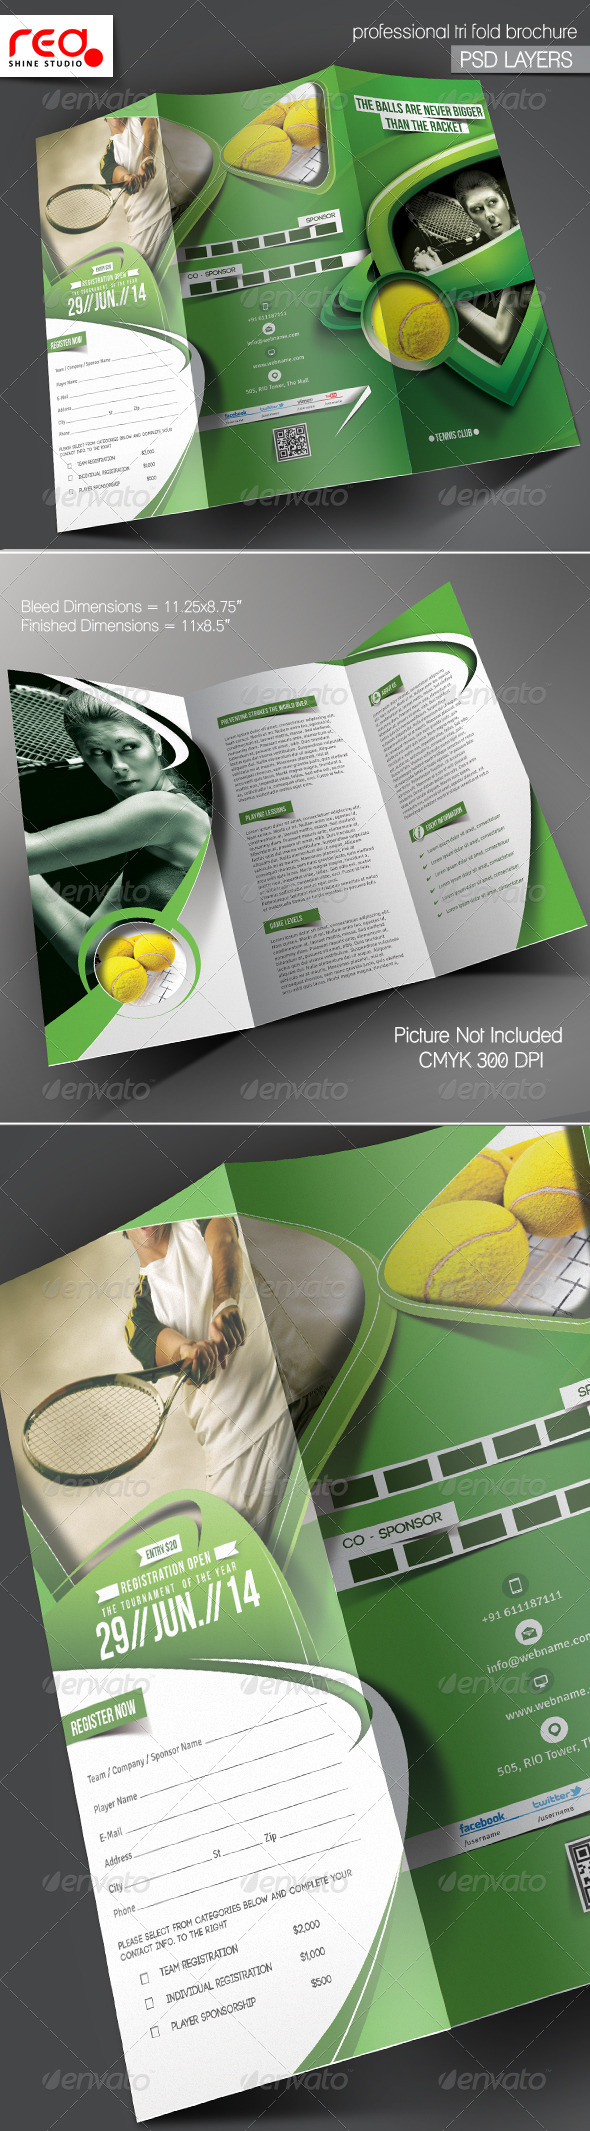 Tennis Competition Trifold Brochure Template - Catalogs Brochures